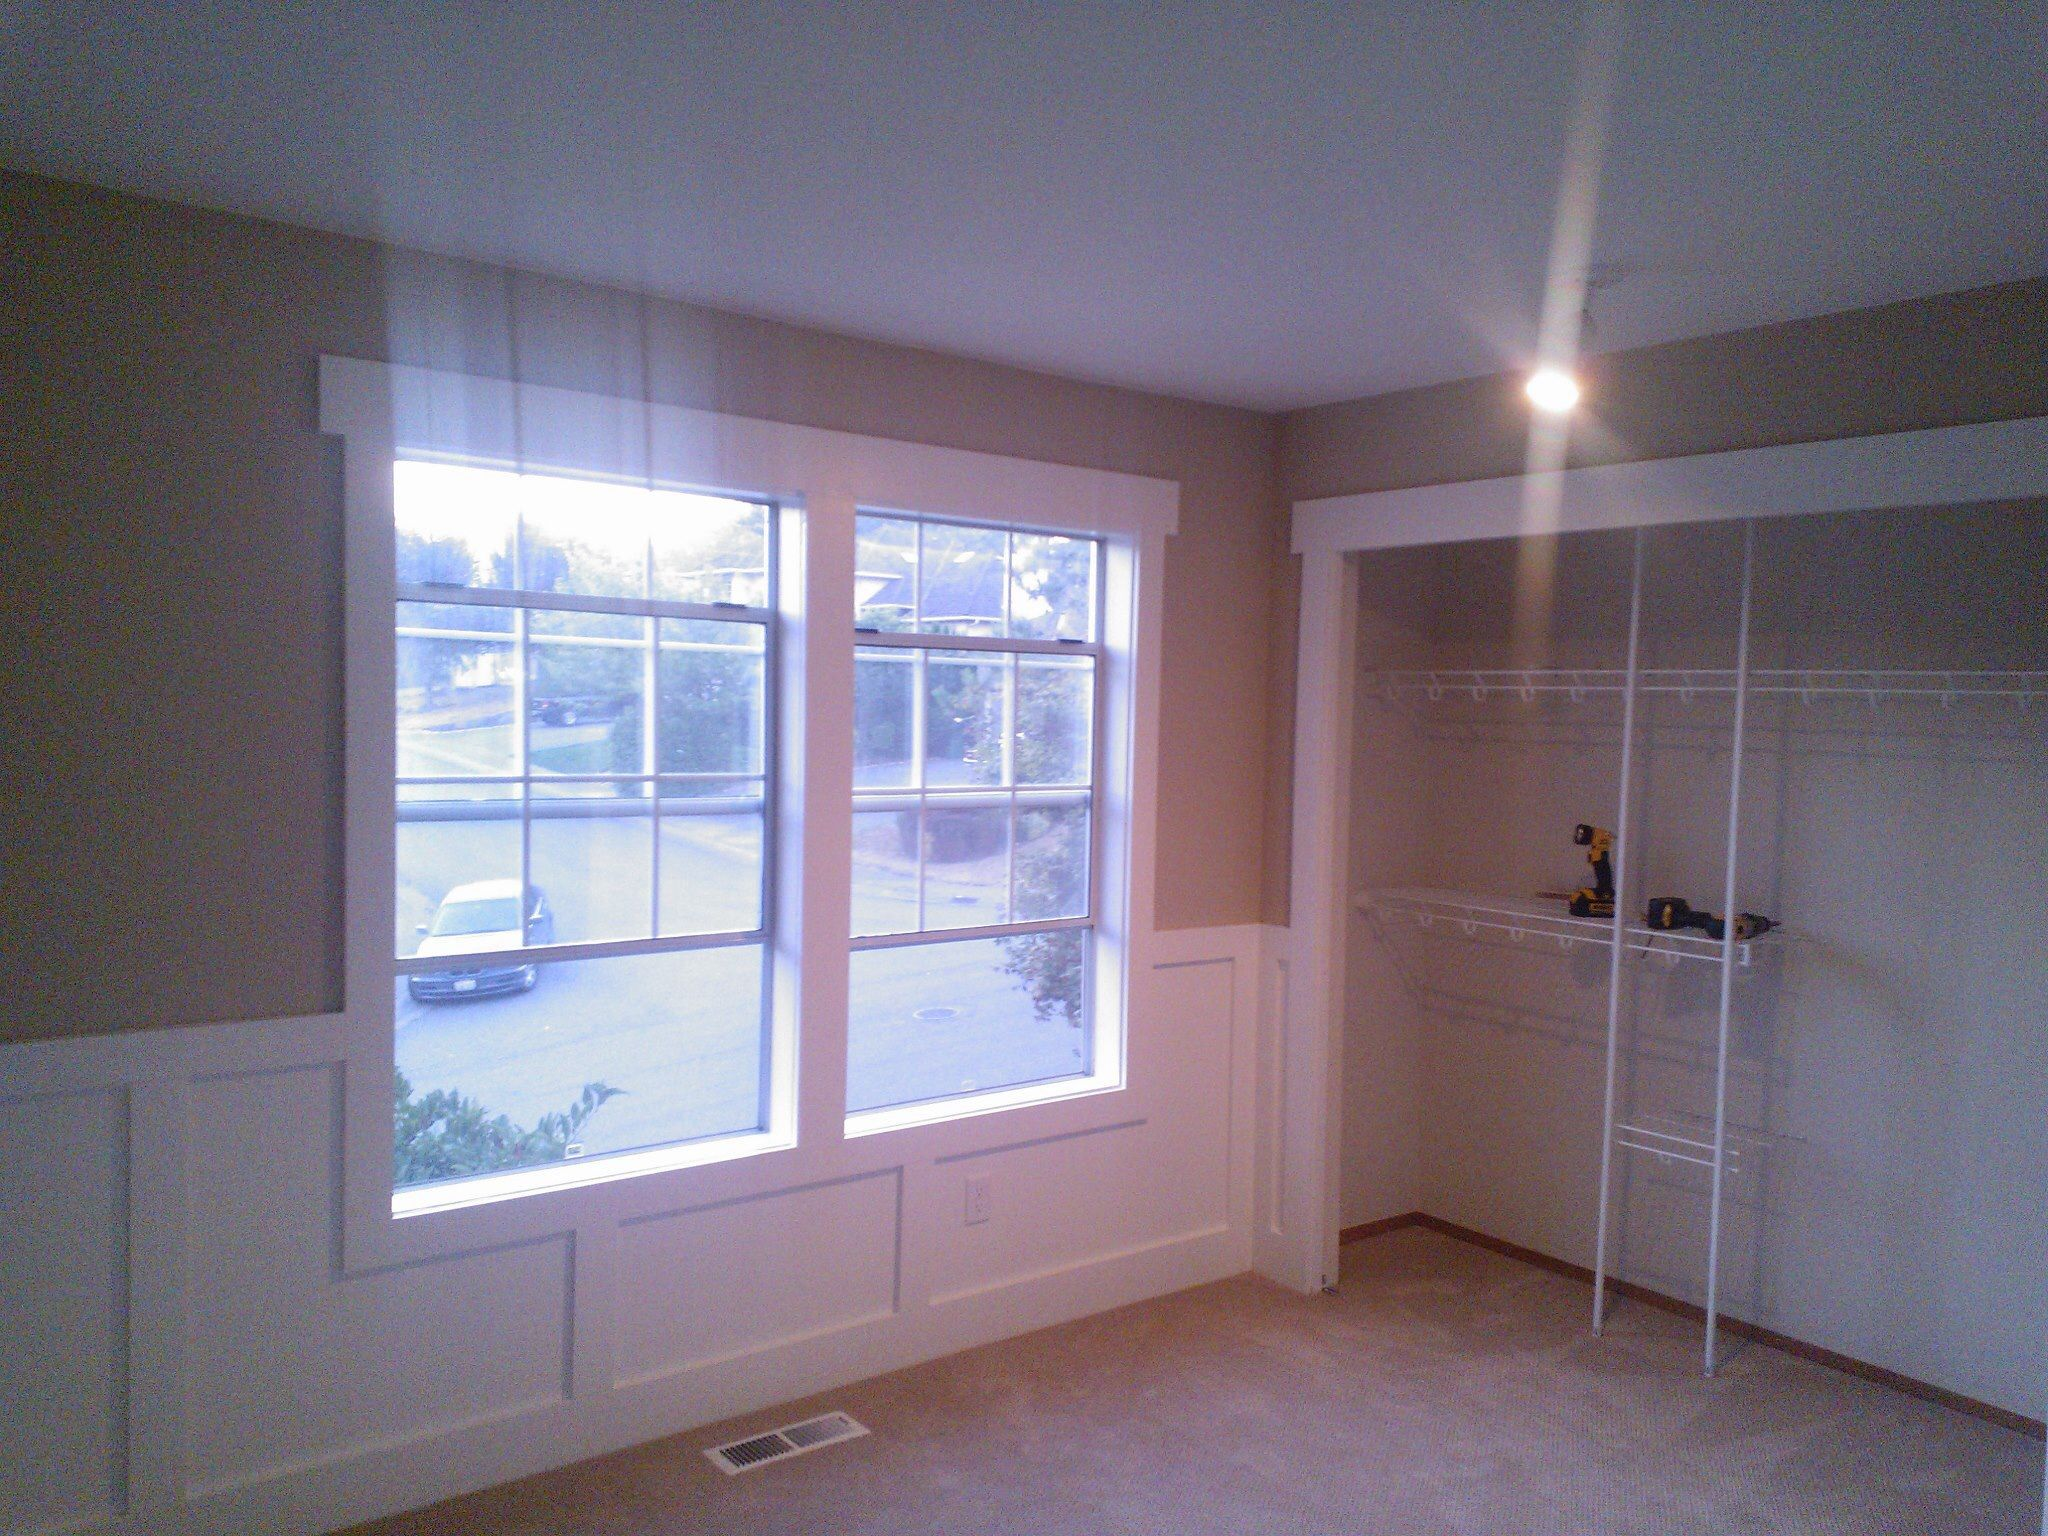 Wainscot solutions inc custom assembled wainscoting - Wainscoting Around A Window